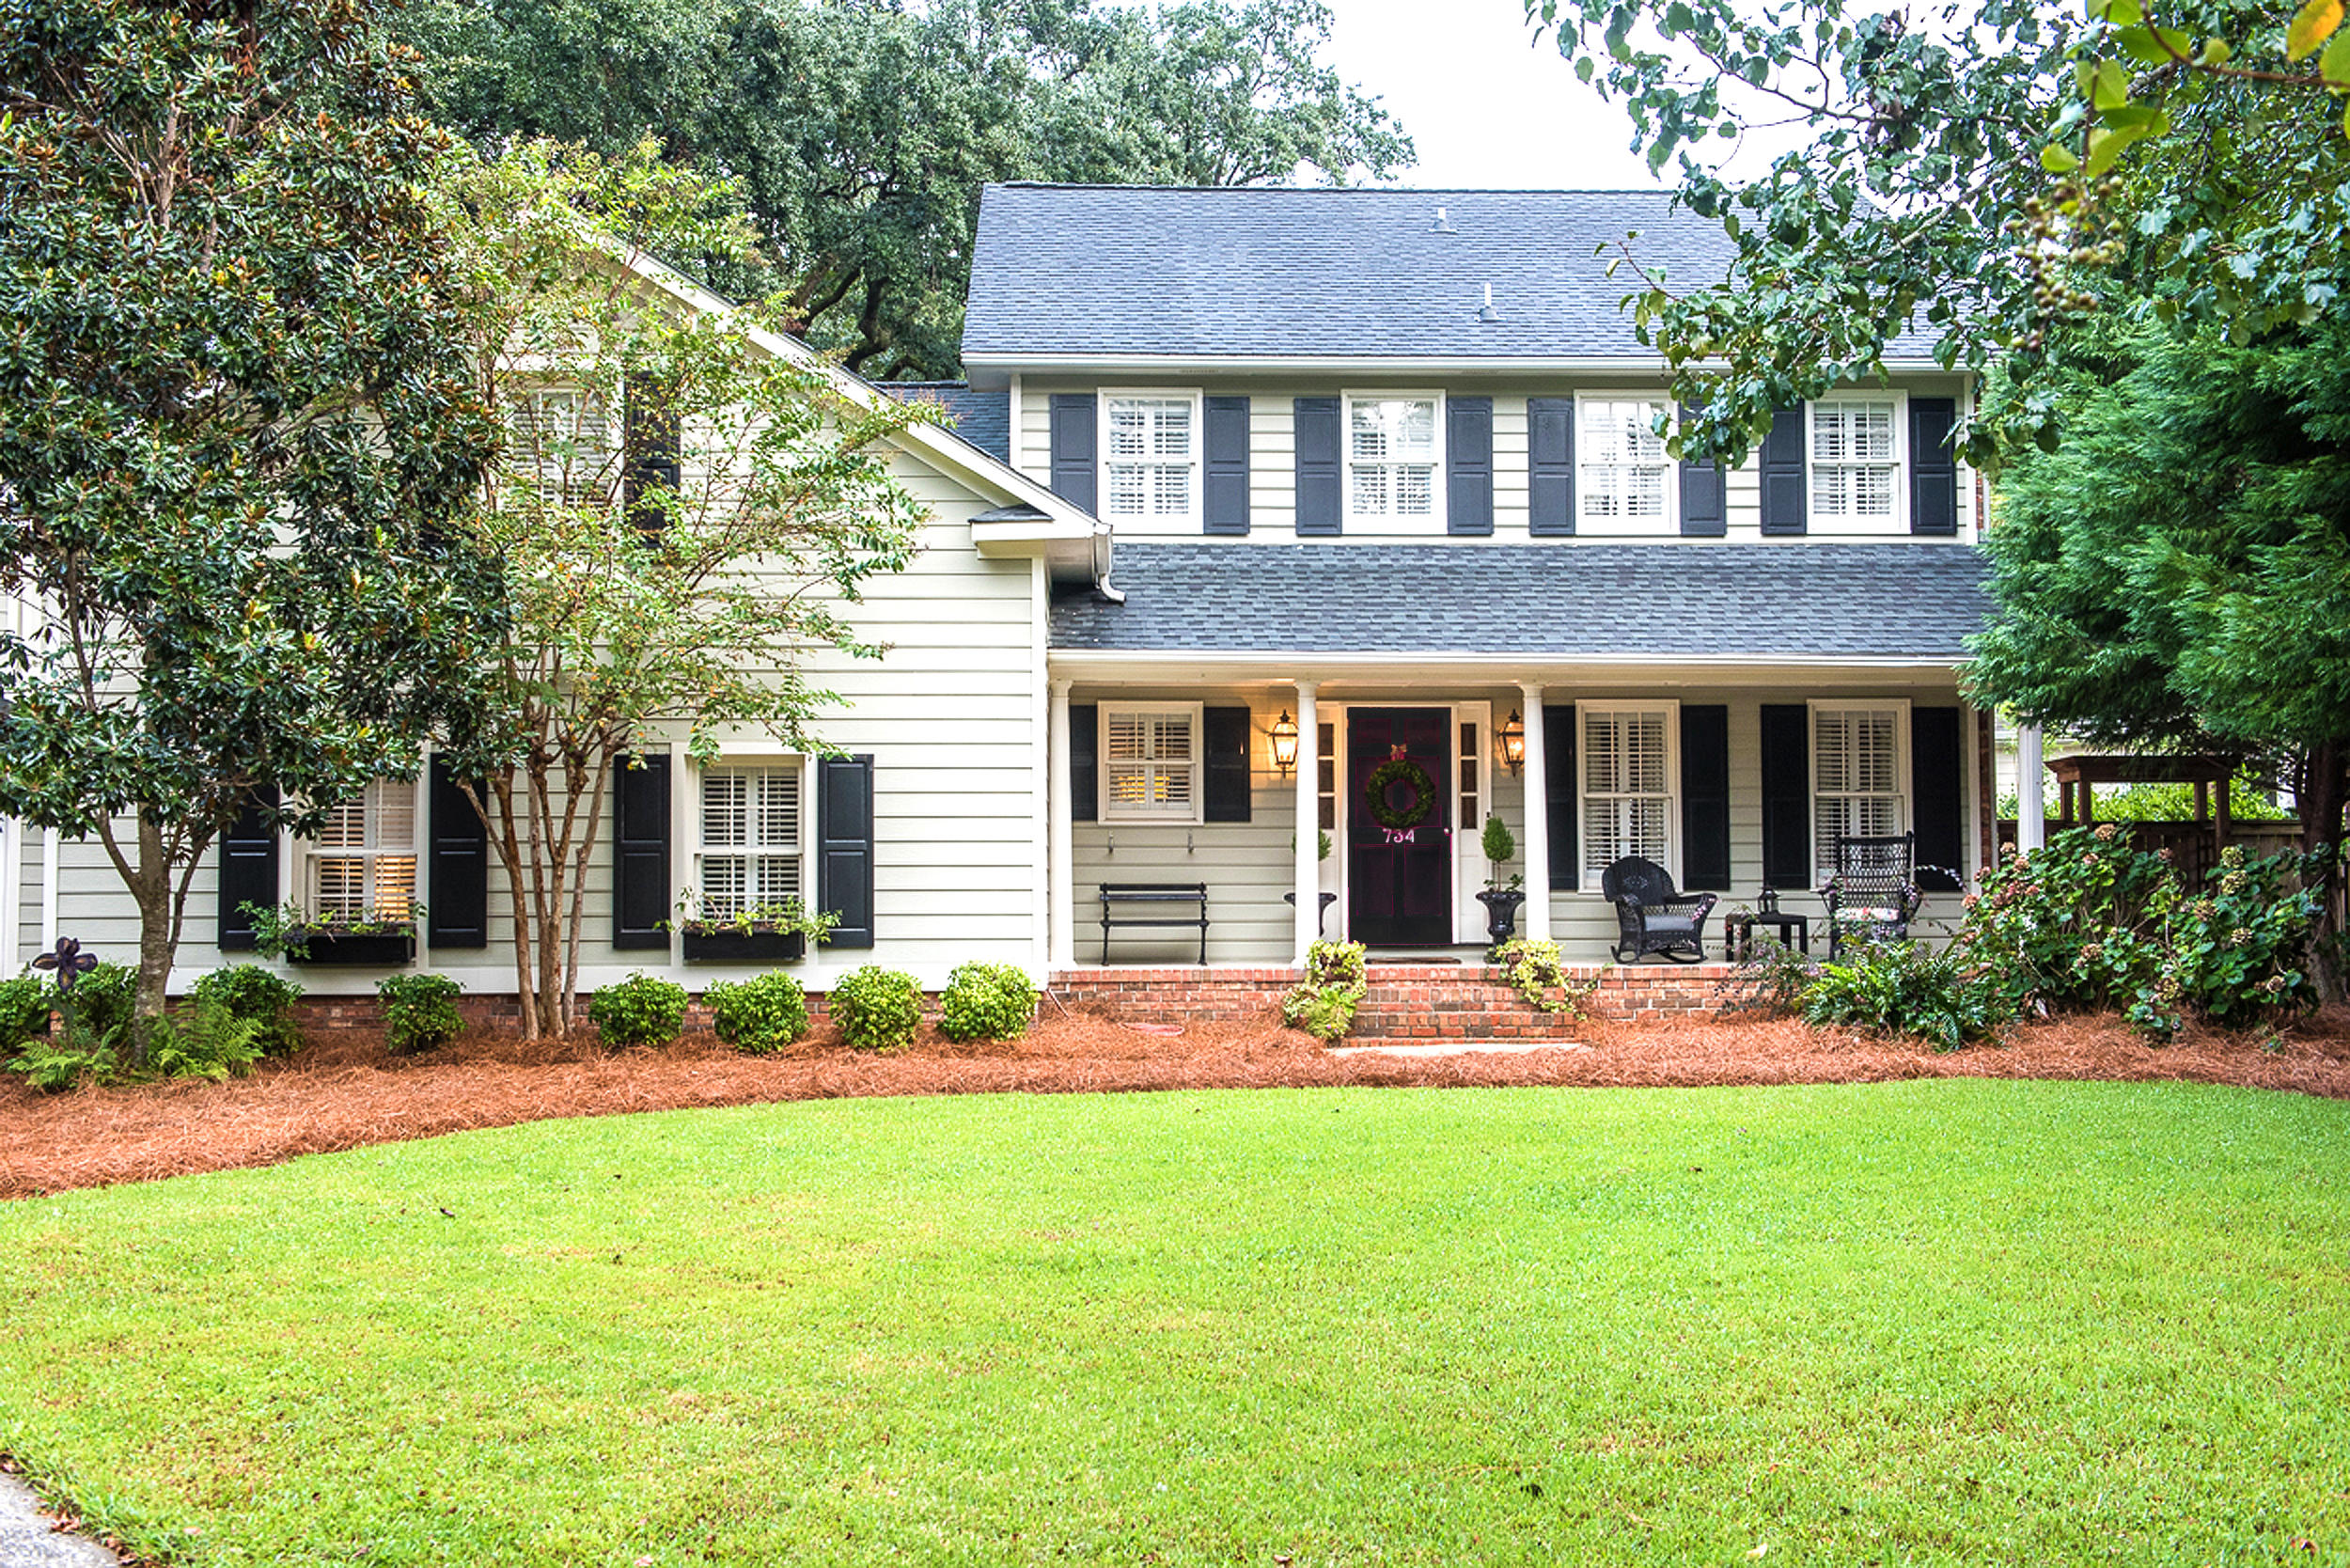 Point Pleasant Homes For Sale - 734 Mildenhall, Mount Pleasant, SC - 22